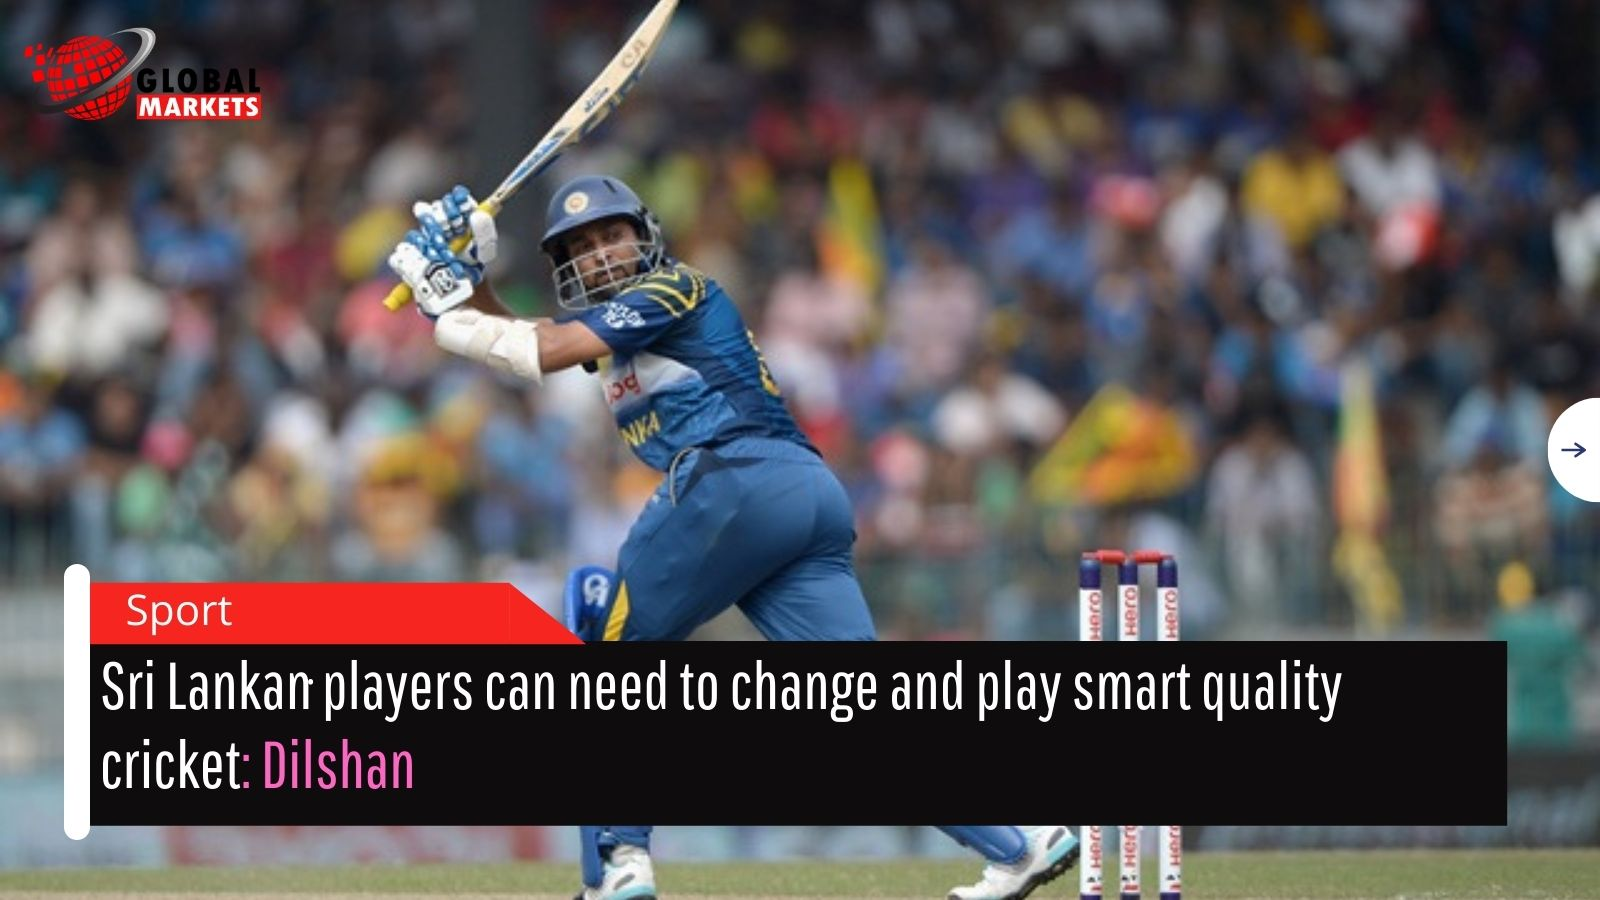 Sri Lankan players can need to change and play smart quality cricket: Dilshan